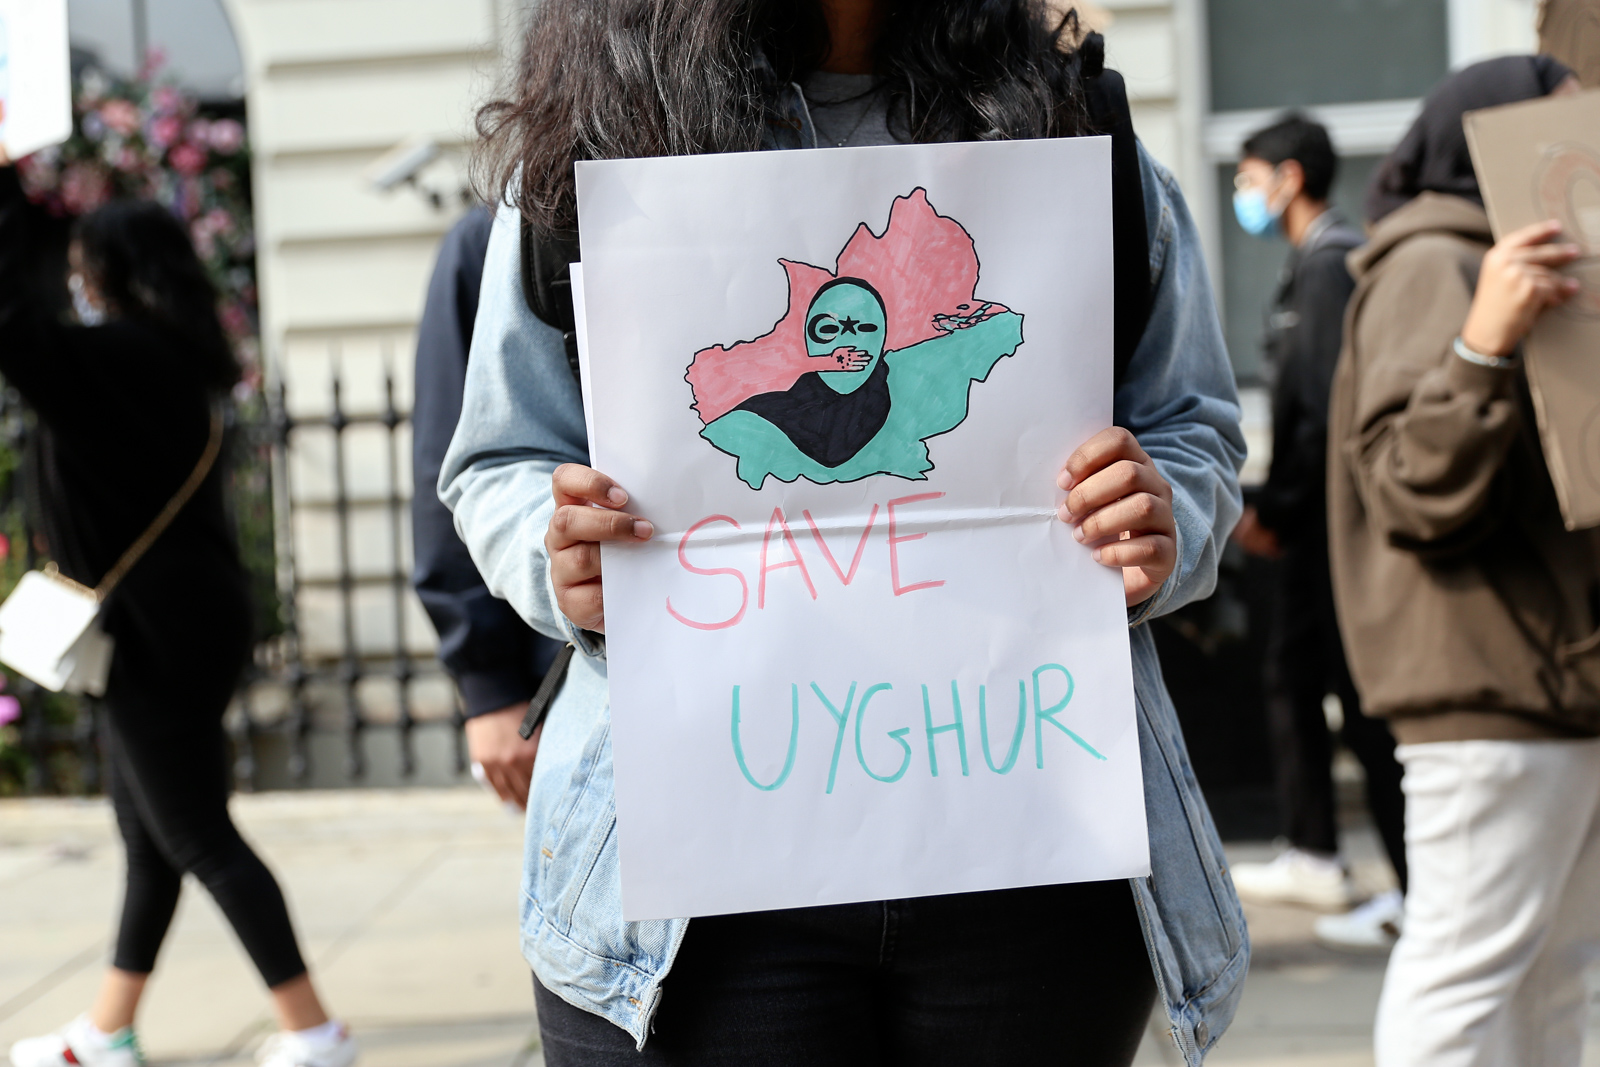 Vice - Chinese Embassy Uyghur Protest - Photos Bex Wade-22.jpg